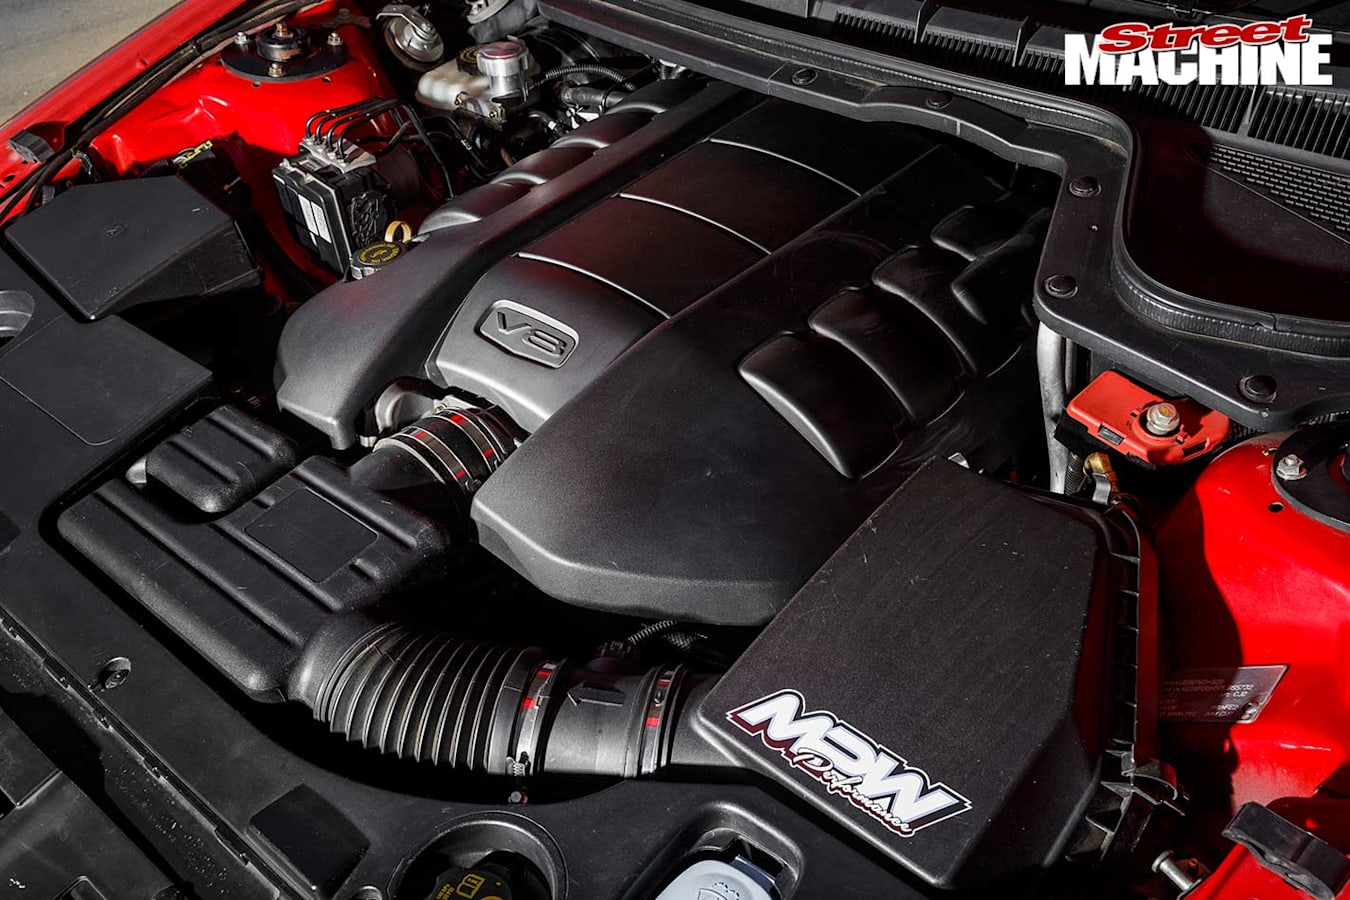 Holden Commodore VE SS engine bay